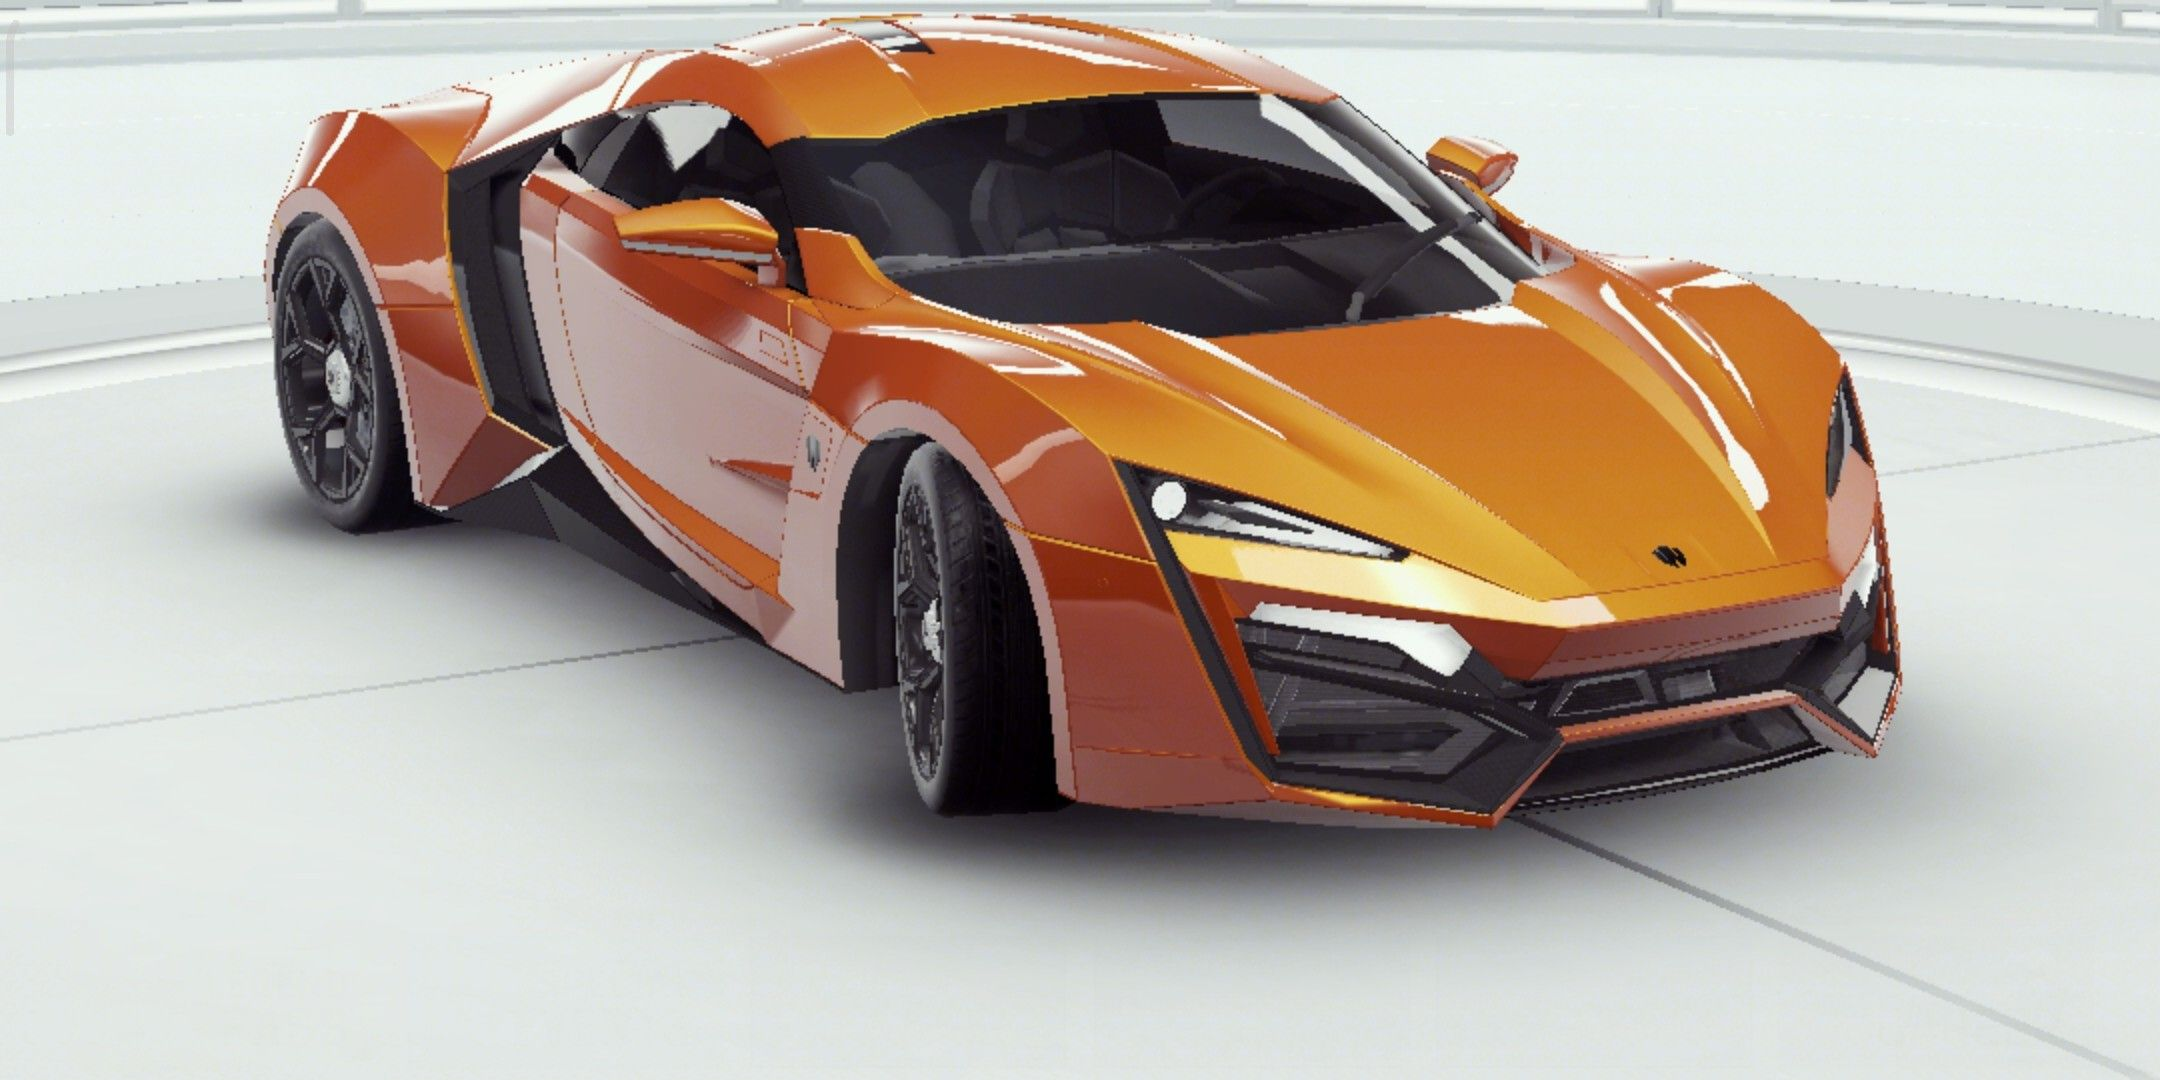 W Motors Lykan Hypersport From Asphalt 9 Legends Lykan Hypersport Super Cars Dream Cars